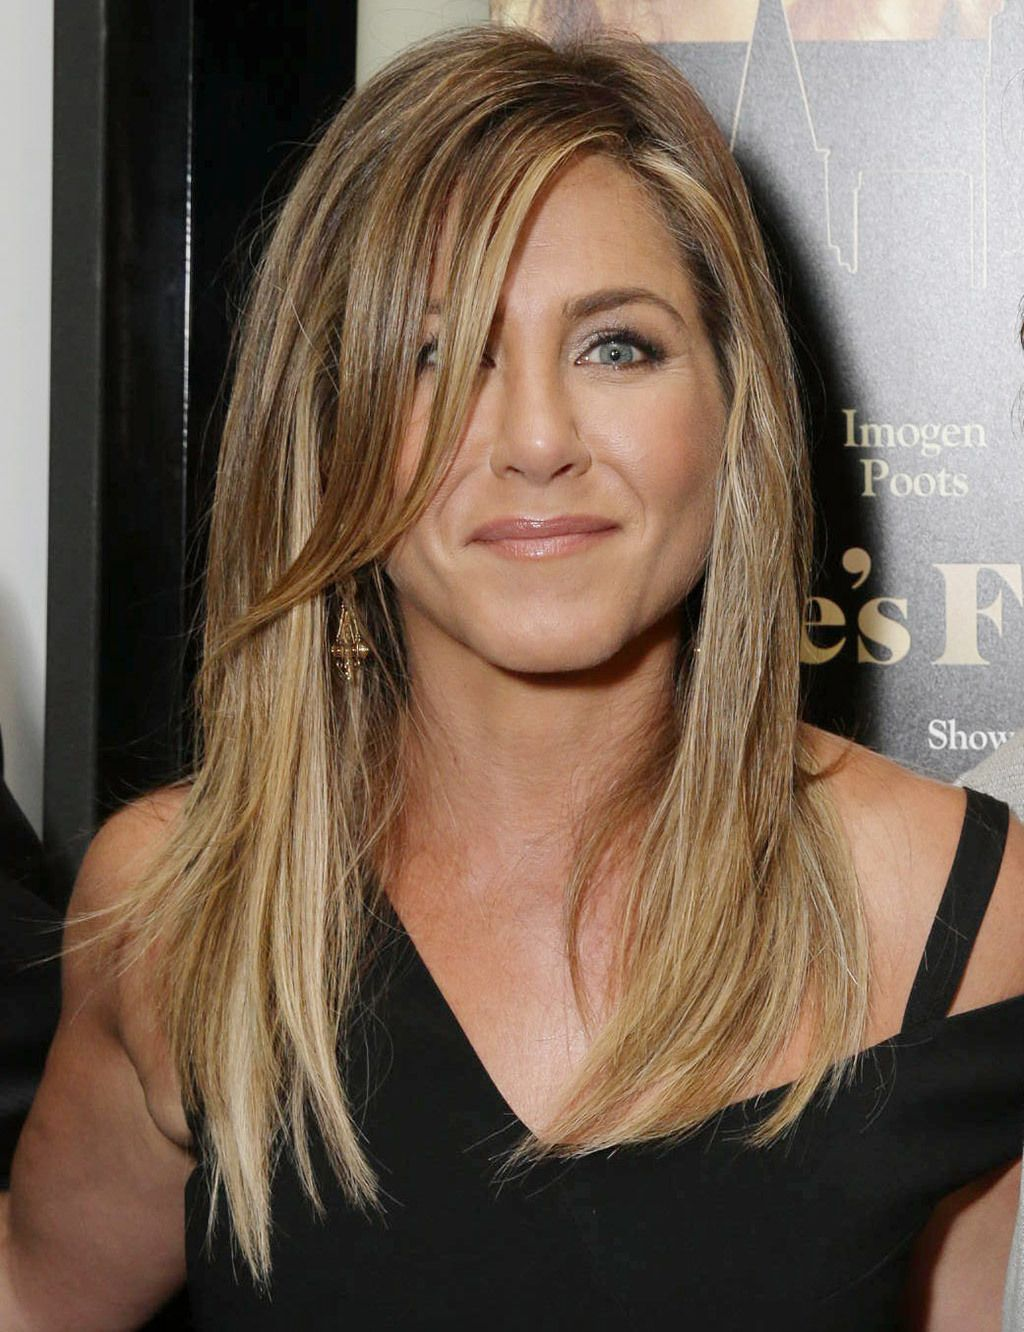 More: Jennifer Aniston Wears No Makeup in New Instagram Pic